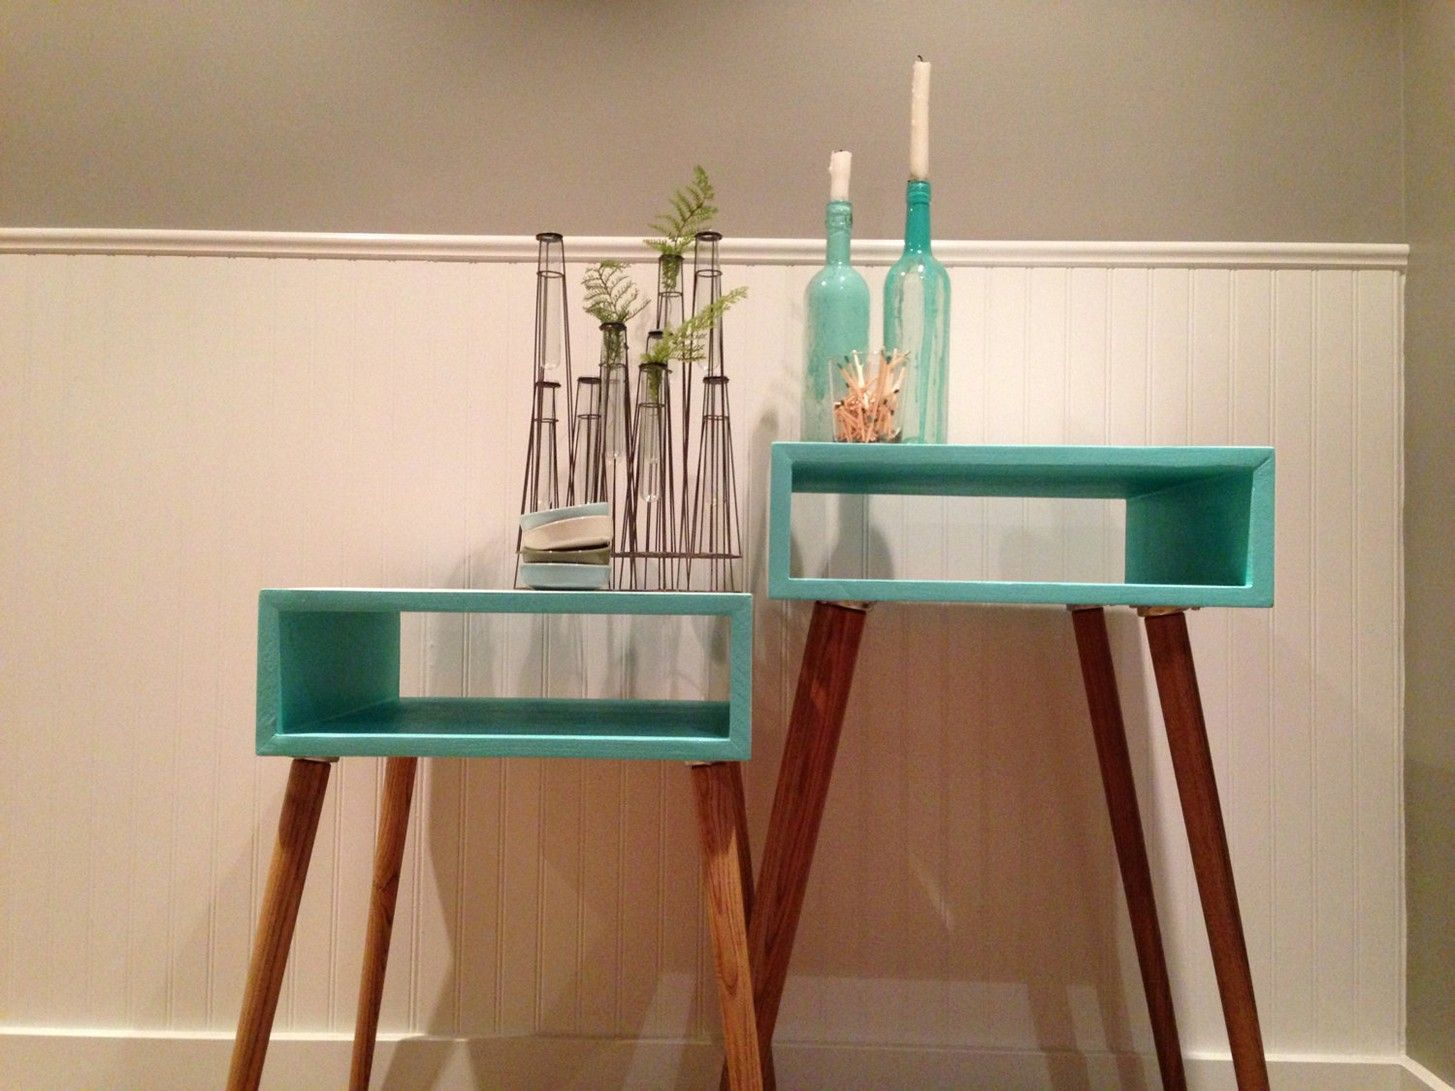 diy modern side table ideas | sİde table | pinterest | modern